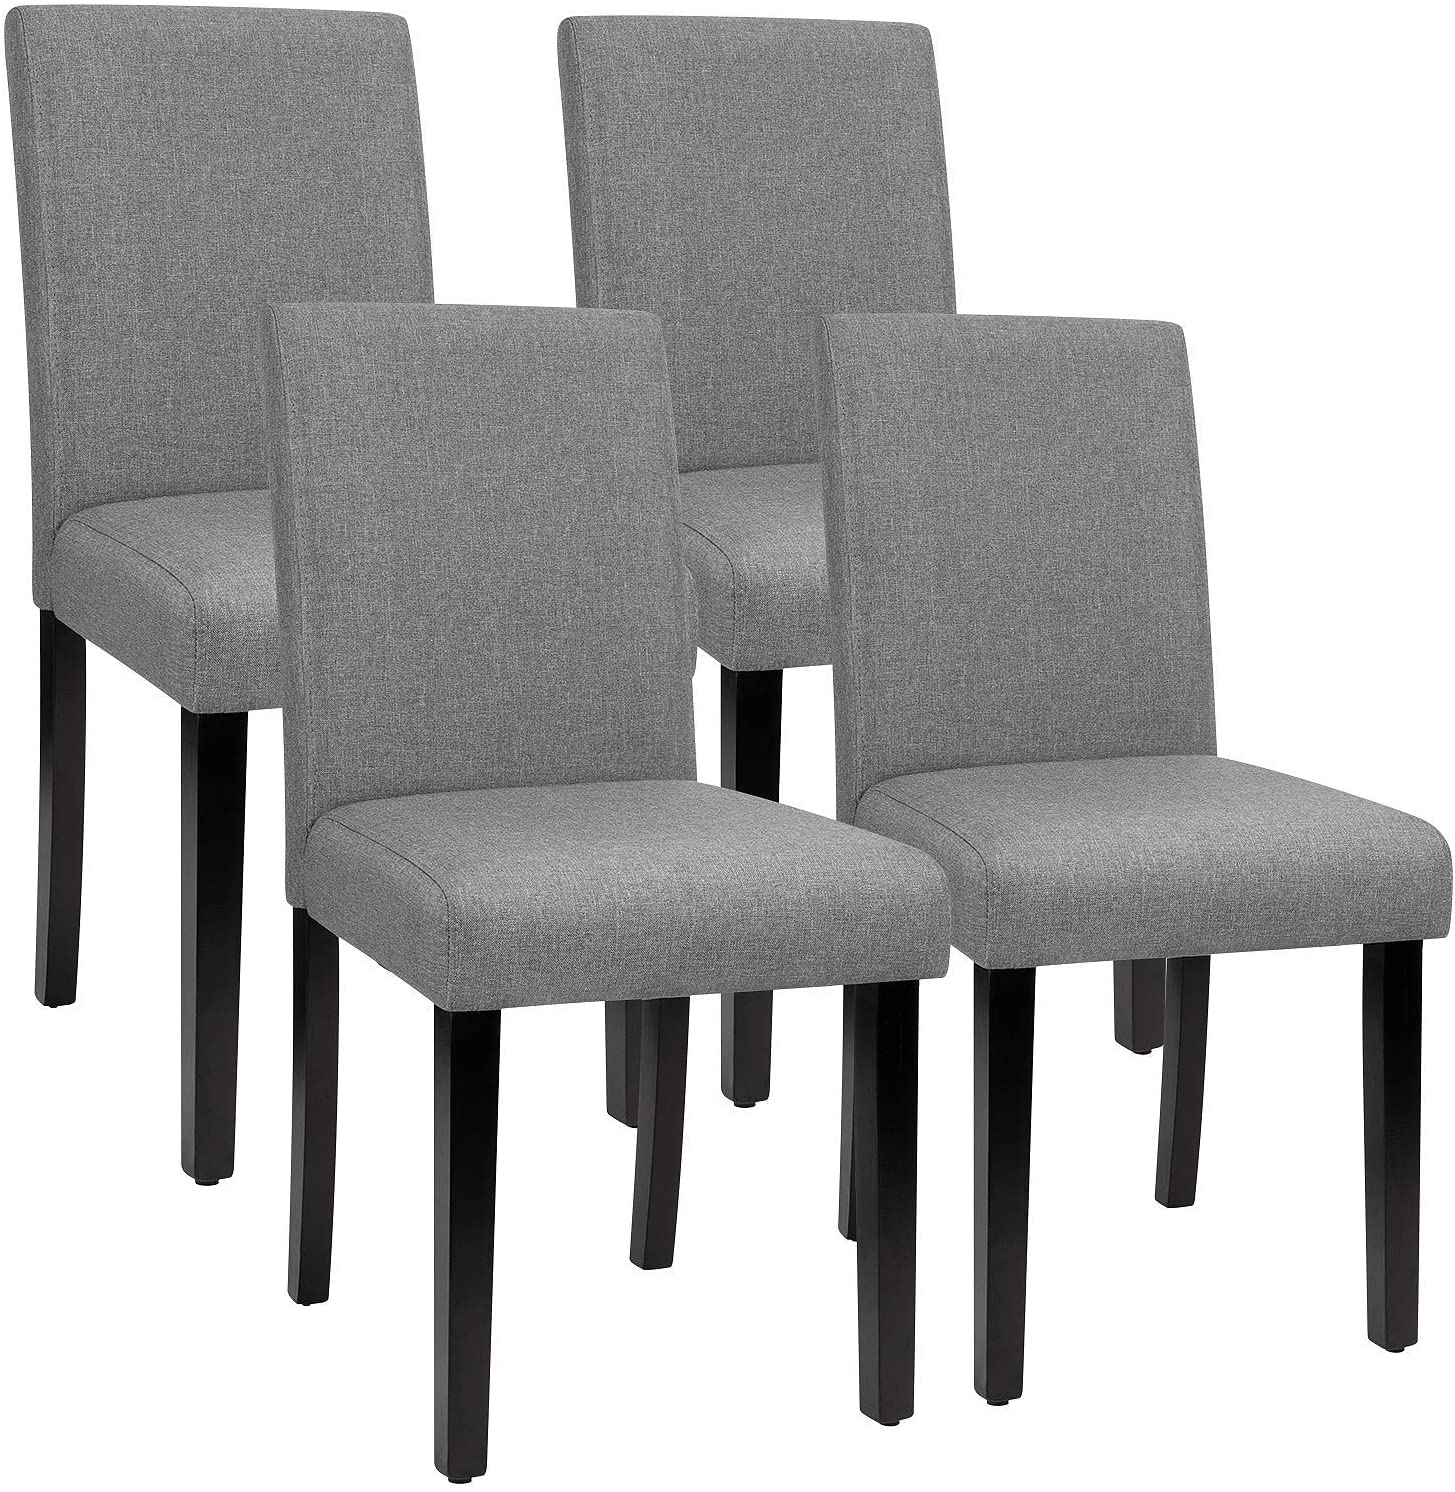 Furmax Dining Chairs Urban Style Fabric Parson Chairs Kitchen Living Room  Armless Side Chair with Solid Wood Legs Set of 10 (Gray)